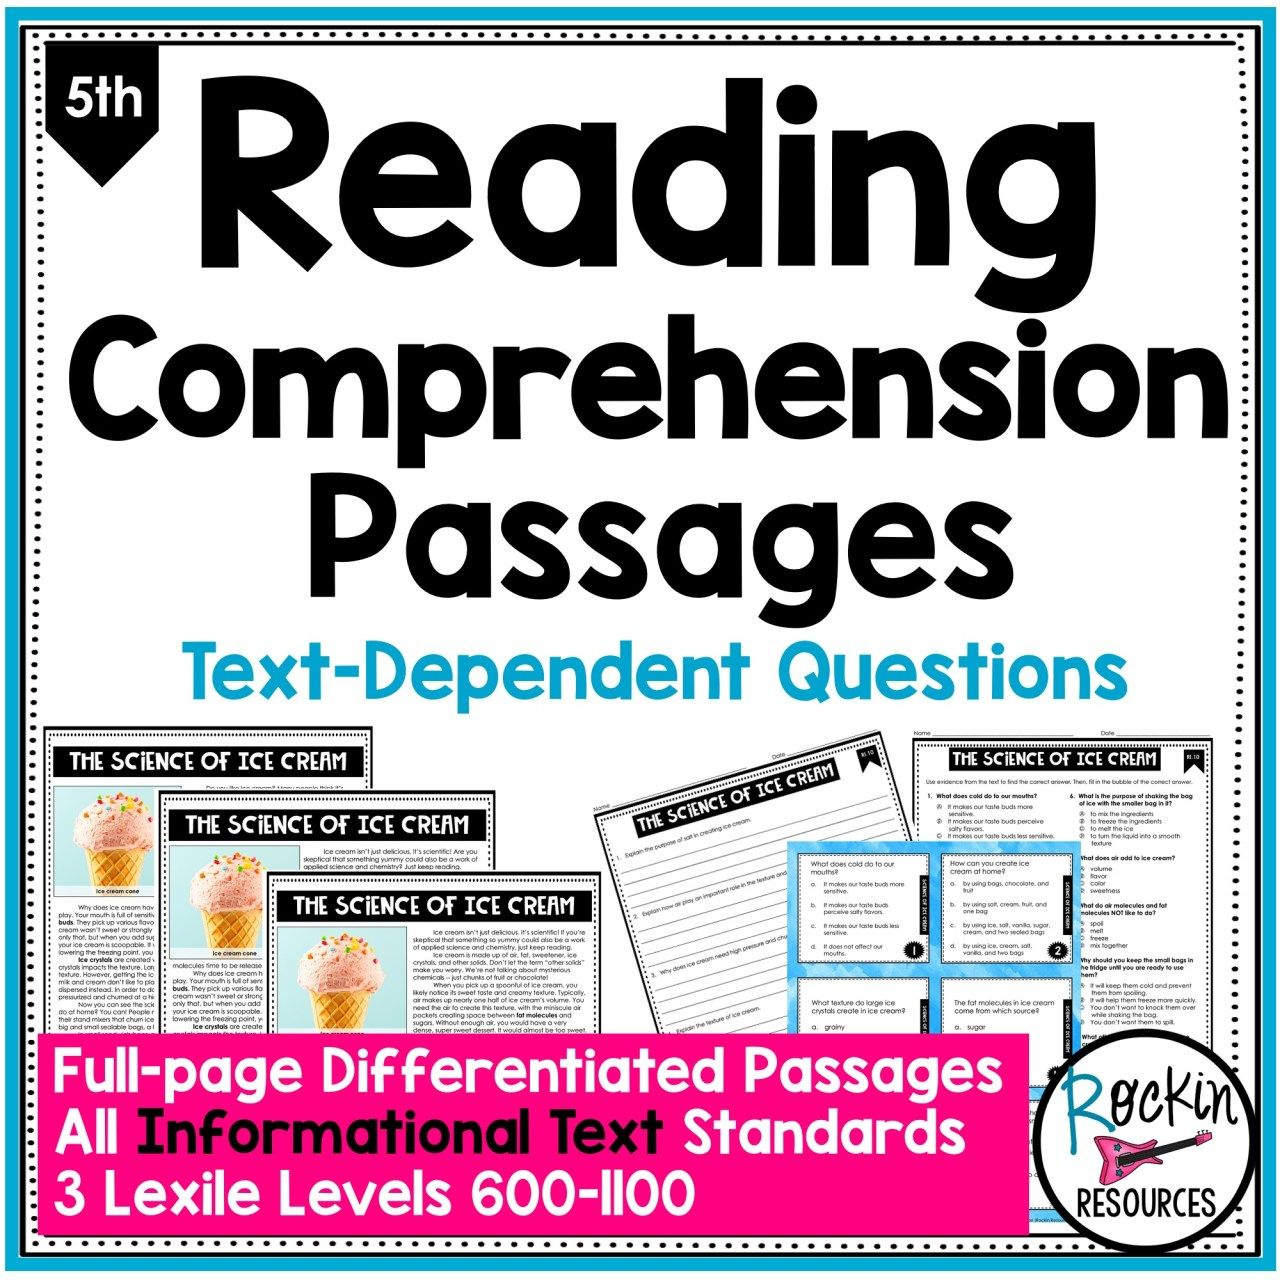 5th Grade Informational Reading Comprehension Passages